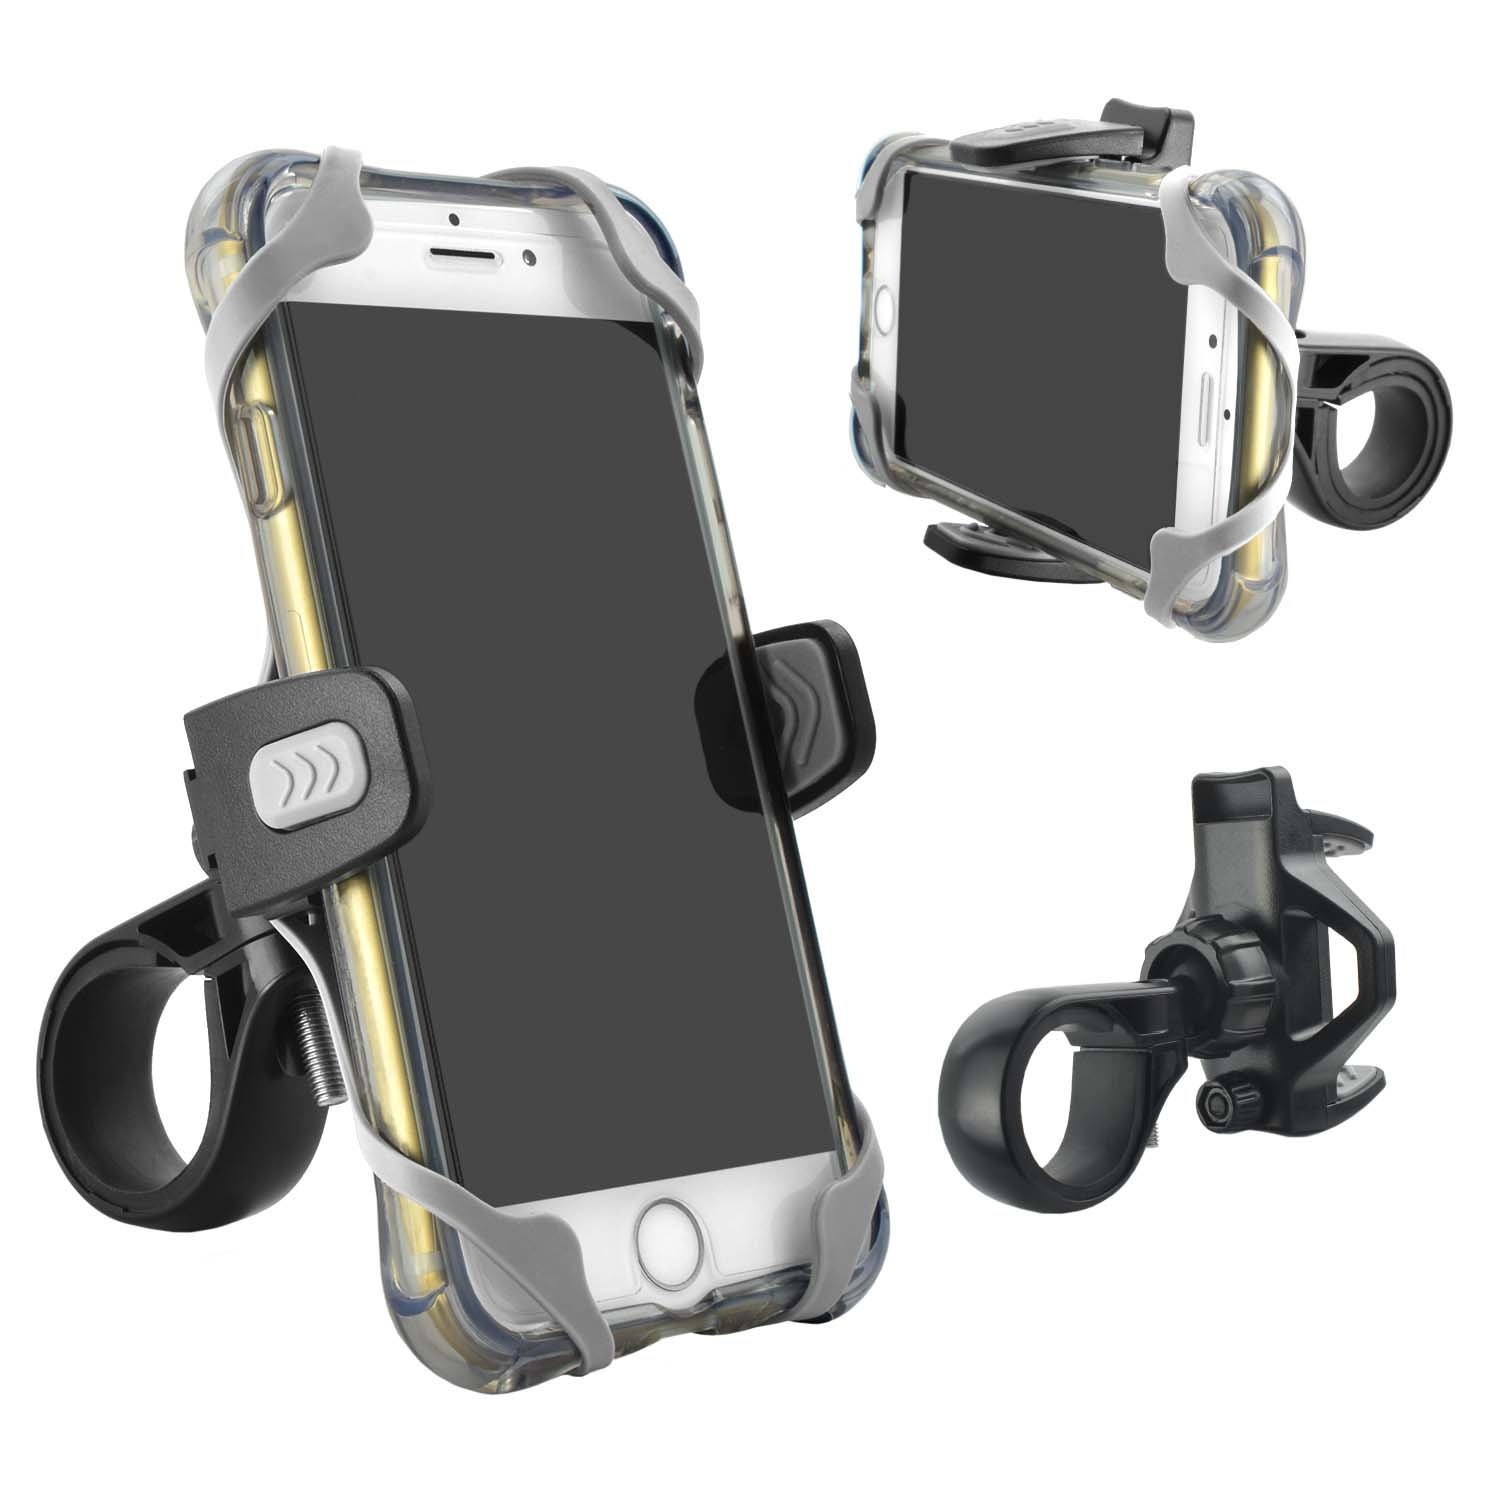 TACKFORM Freedom Cell Phone Bike Mount - A Secure Handleb...